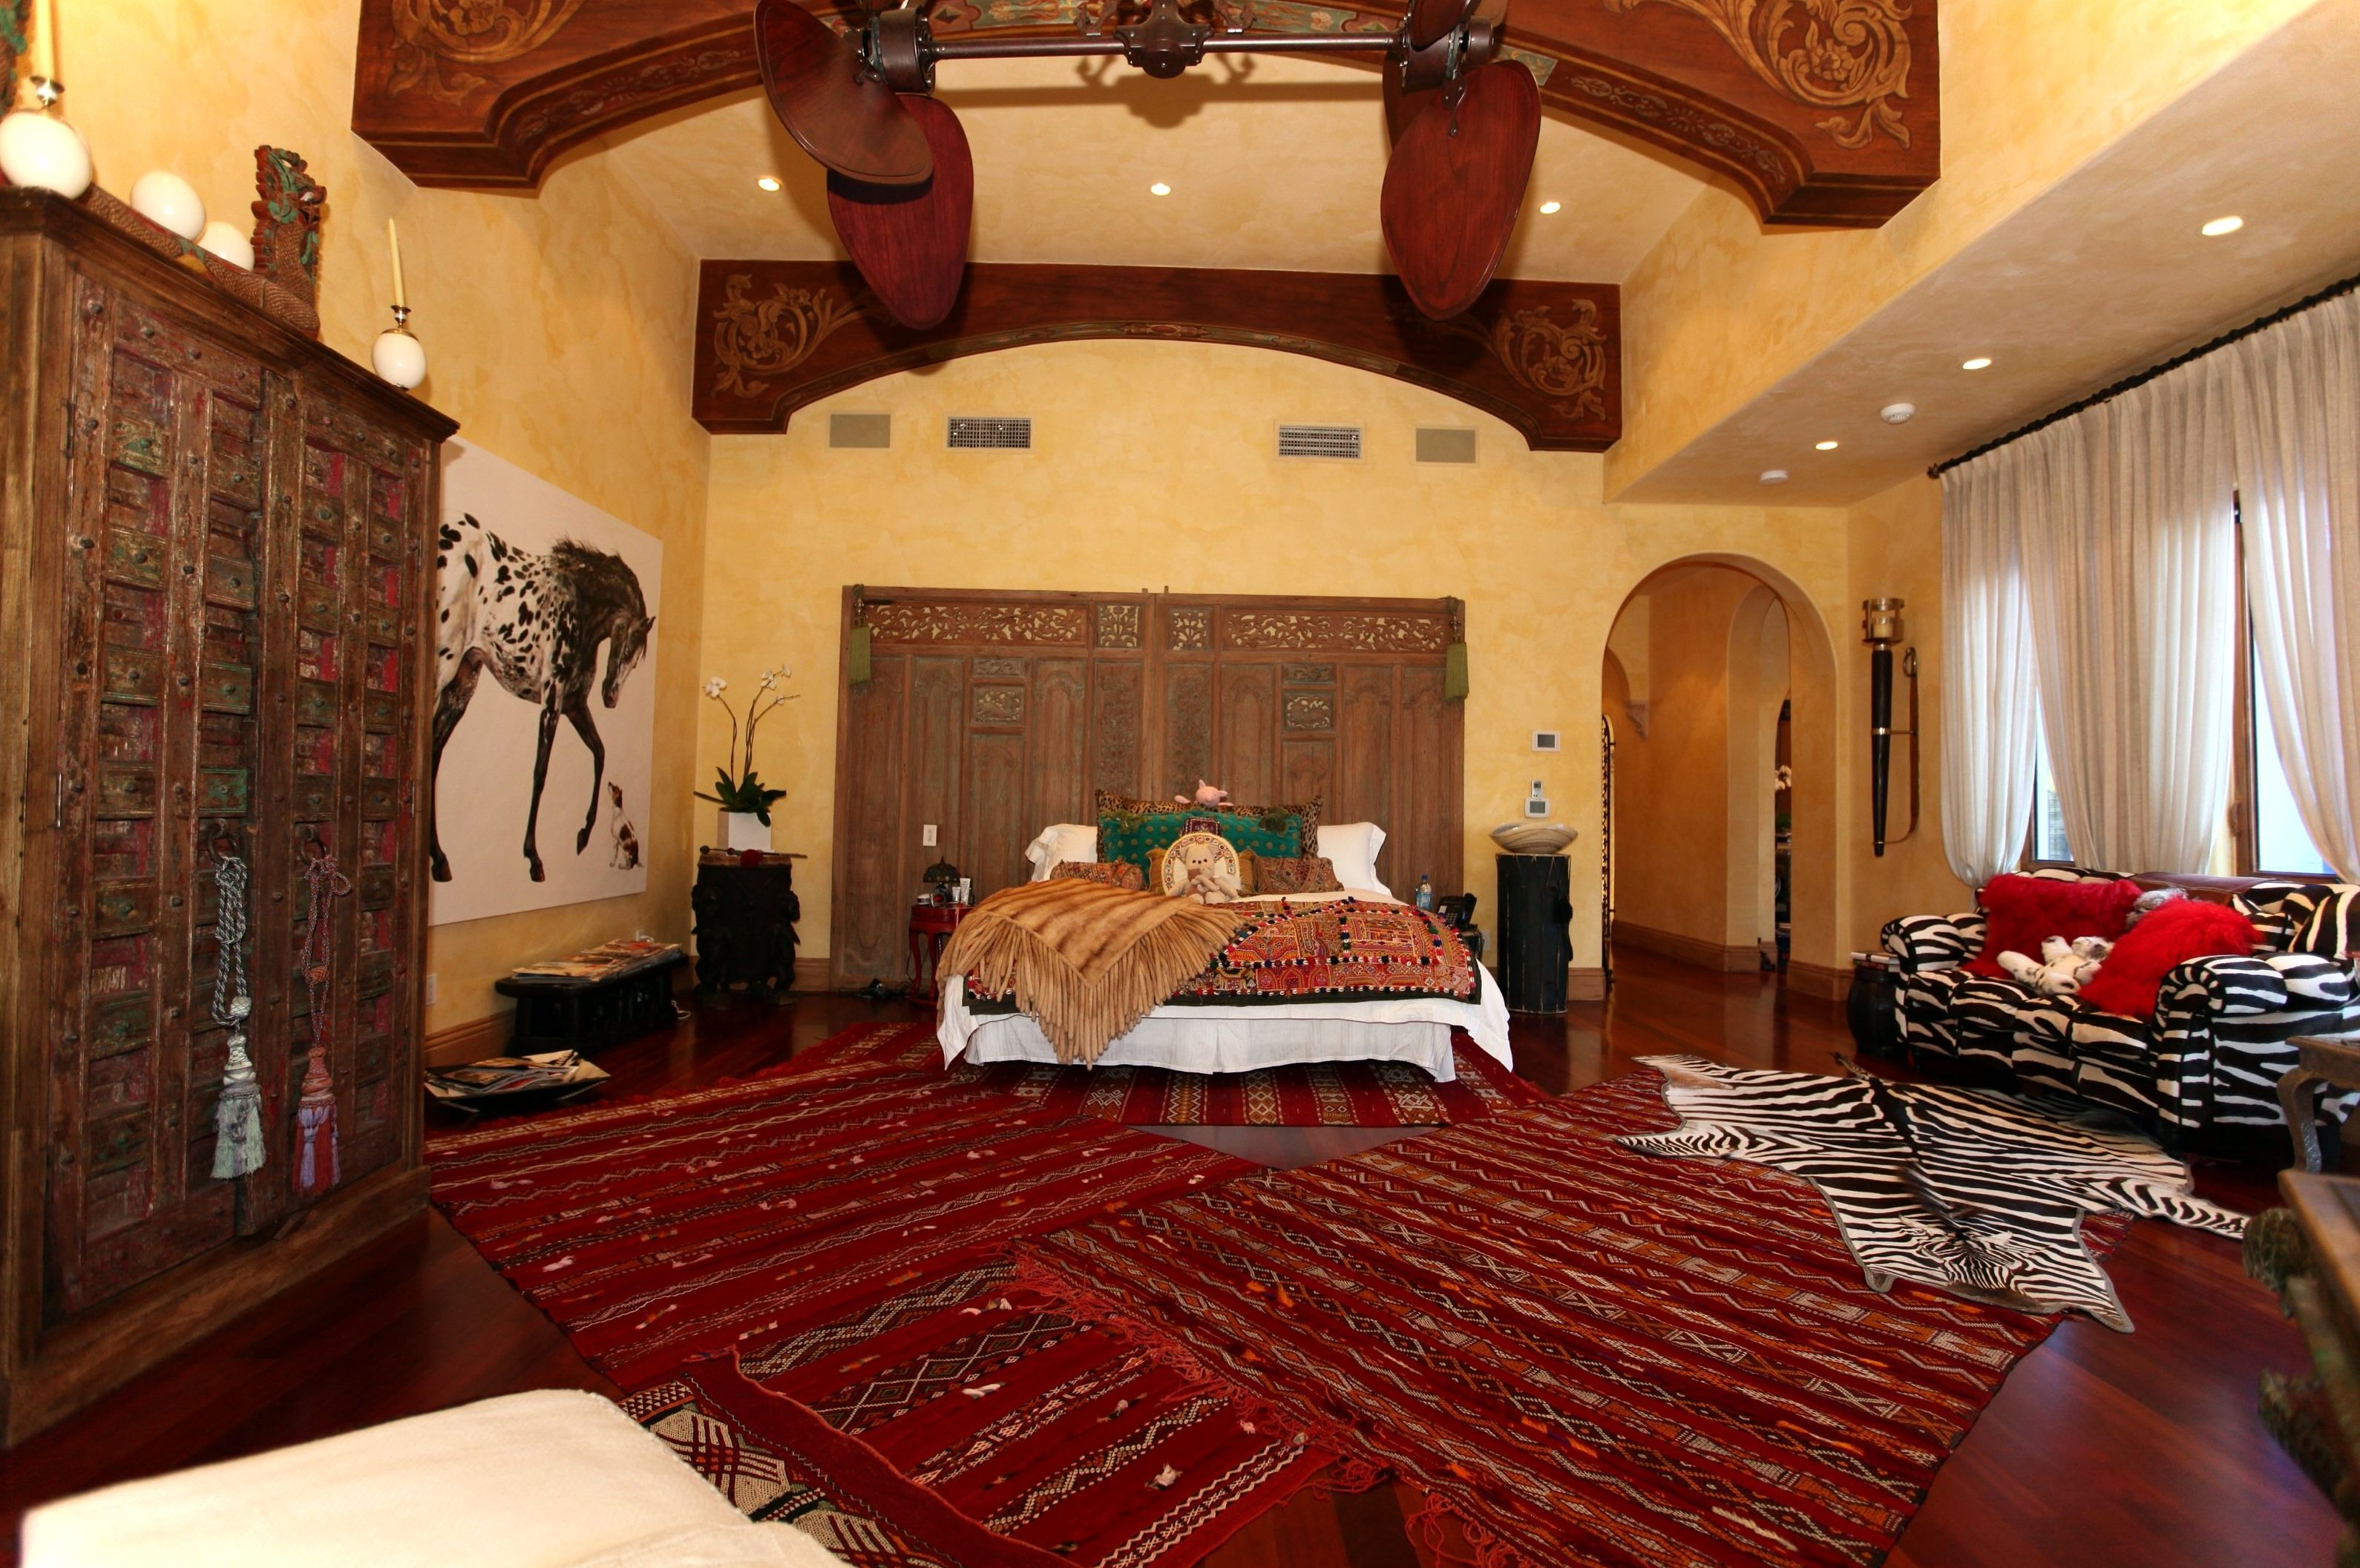 Carpeting For Bedrooms Concept Decoration adorable moroccan bedroom theme decorating ideas with large red